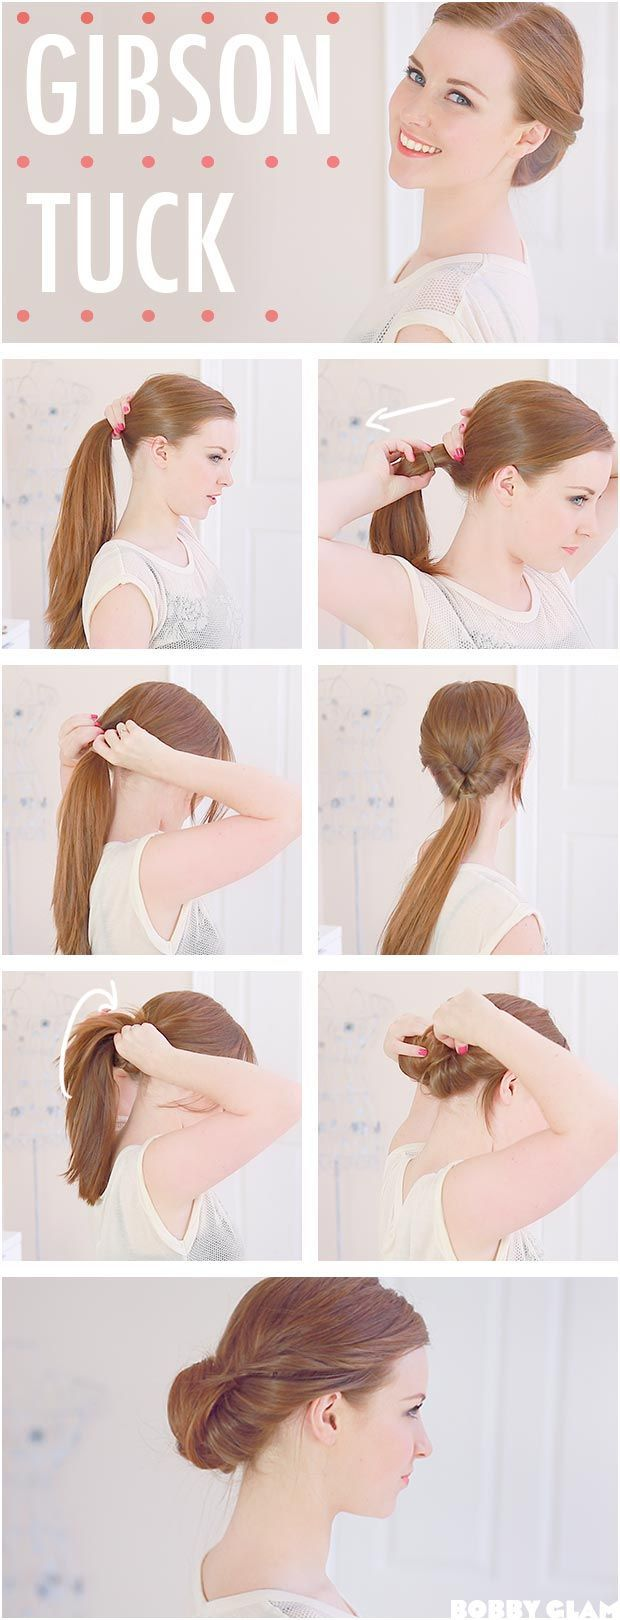 DIY gibson tuck hair tutorial #DIY #Beauty #tips